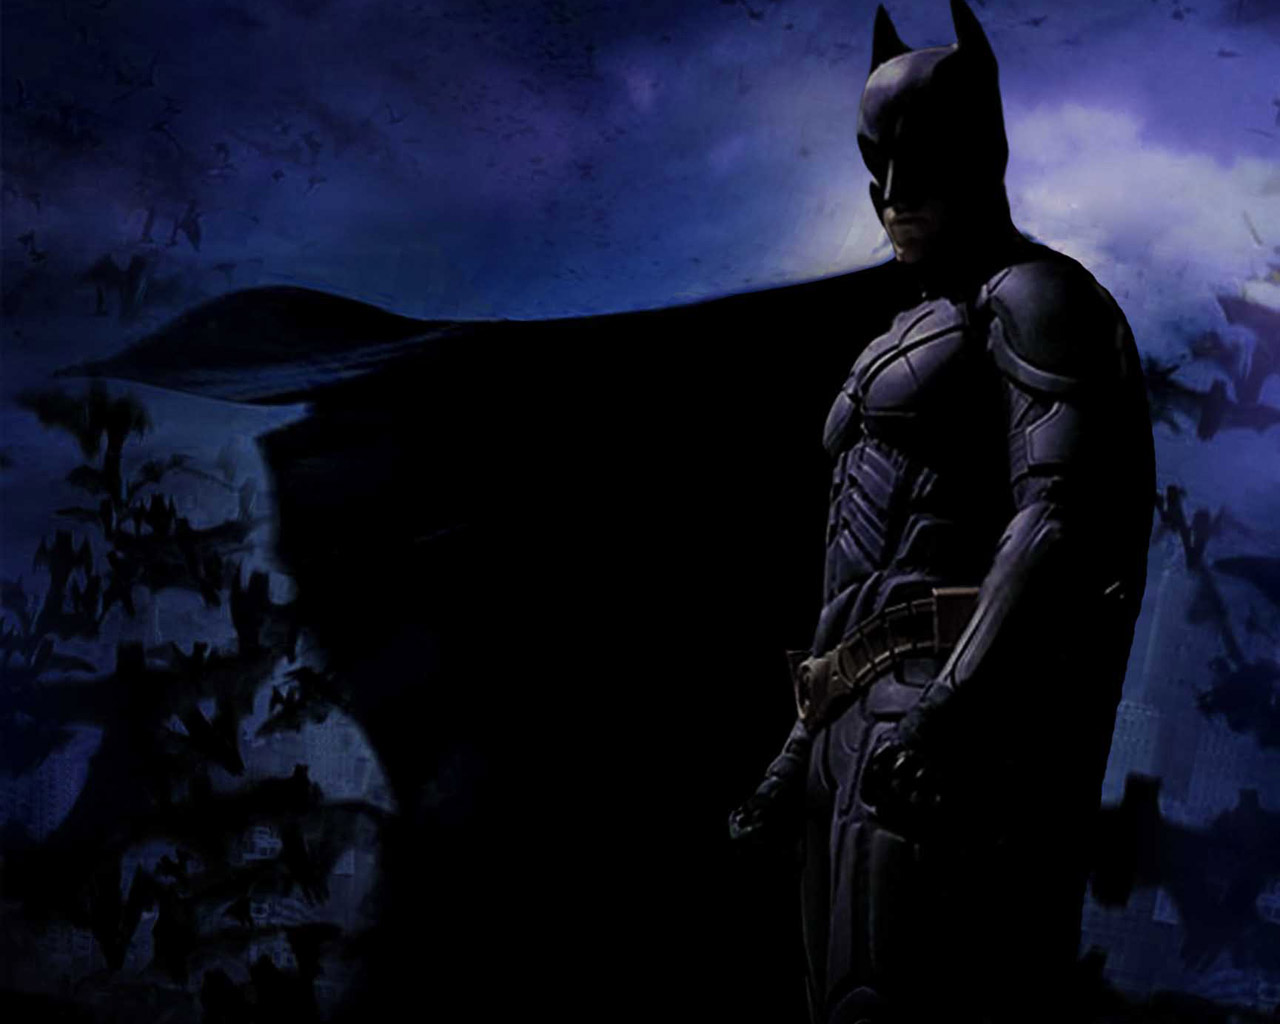 Awesome Batman Wallpapers 1280x1024